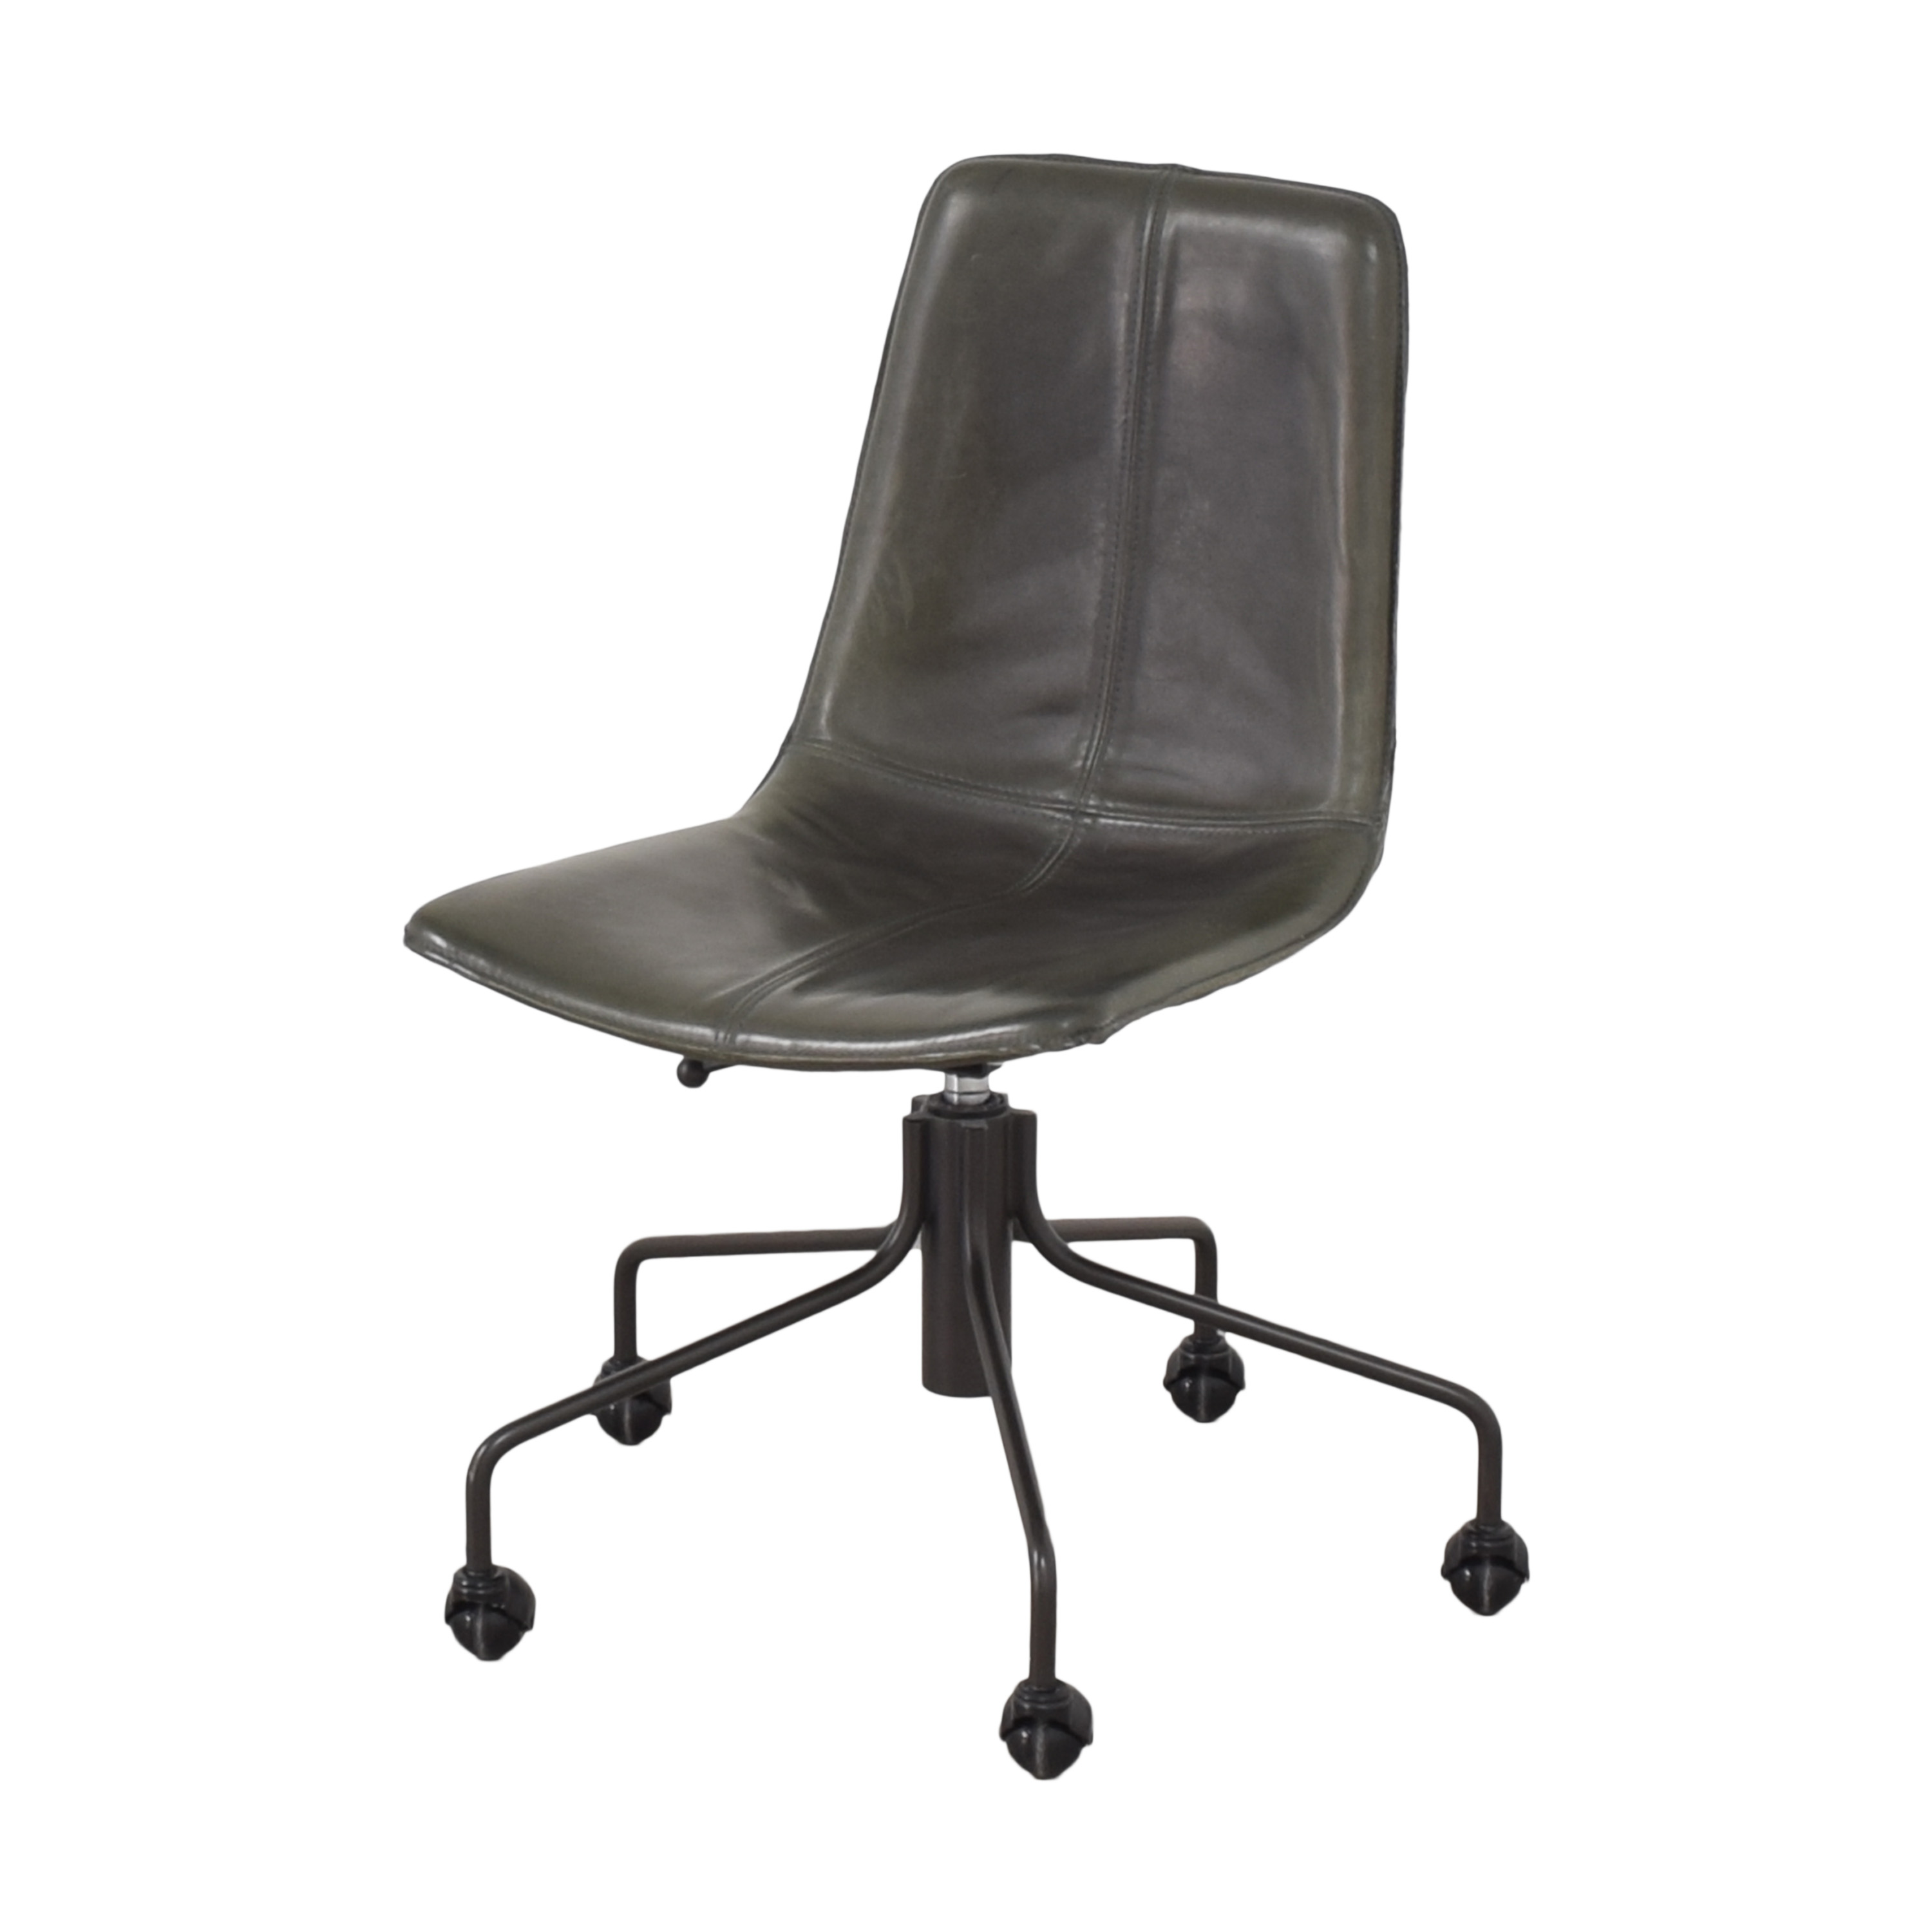 buy West Elm Slope Swivel Office Chair West Elm Chairs